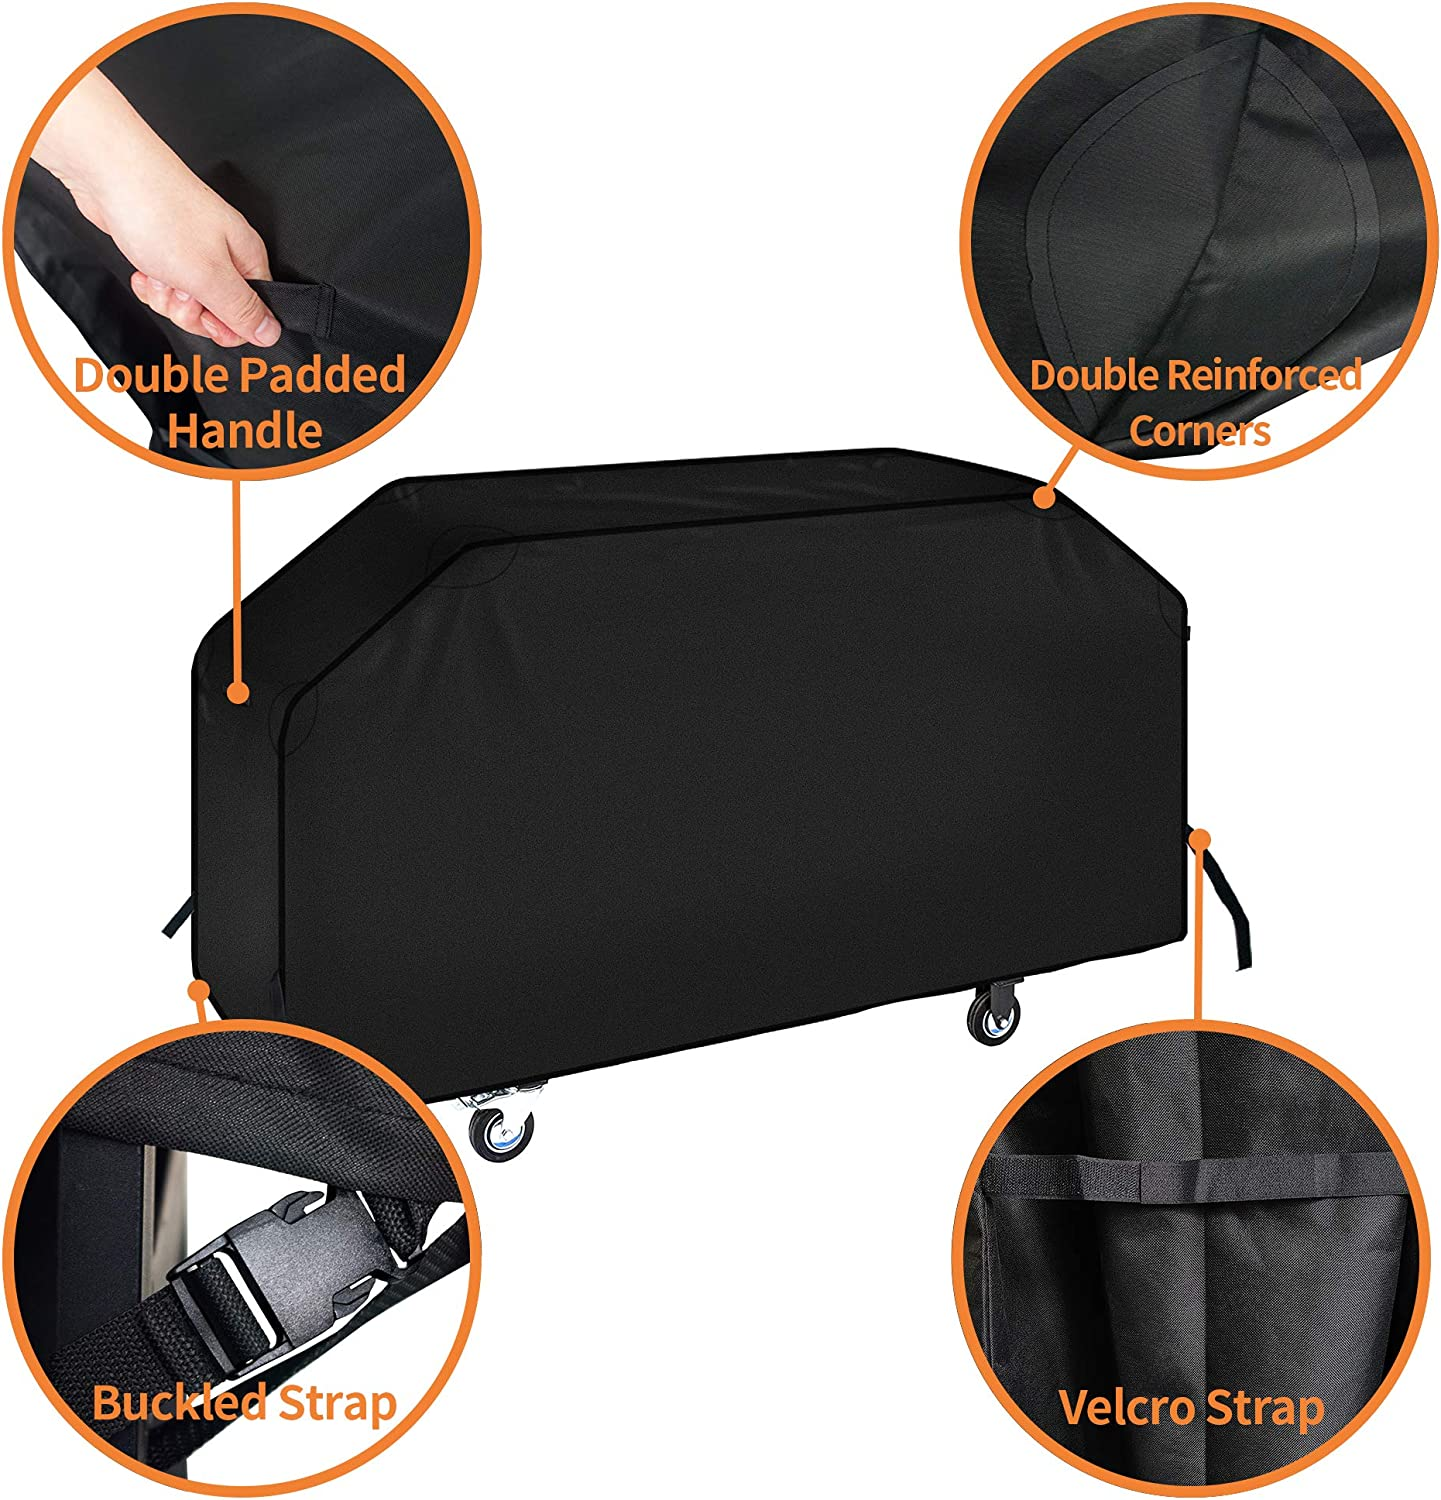 """iCOVER 36 inch Blackstone Griddle Cover, 600D Heavy Duty Waterproof Canvas Flat Top Gas Grill Cover for Blackstone 36"""" Griddle Cooking Station Camp Chef 600 Barbecue Cover with Support Pole : Garden & Outdoor"""